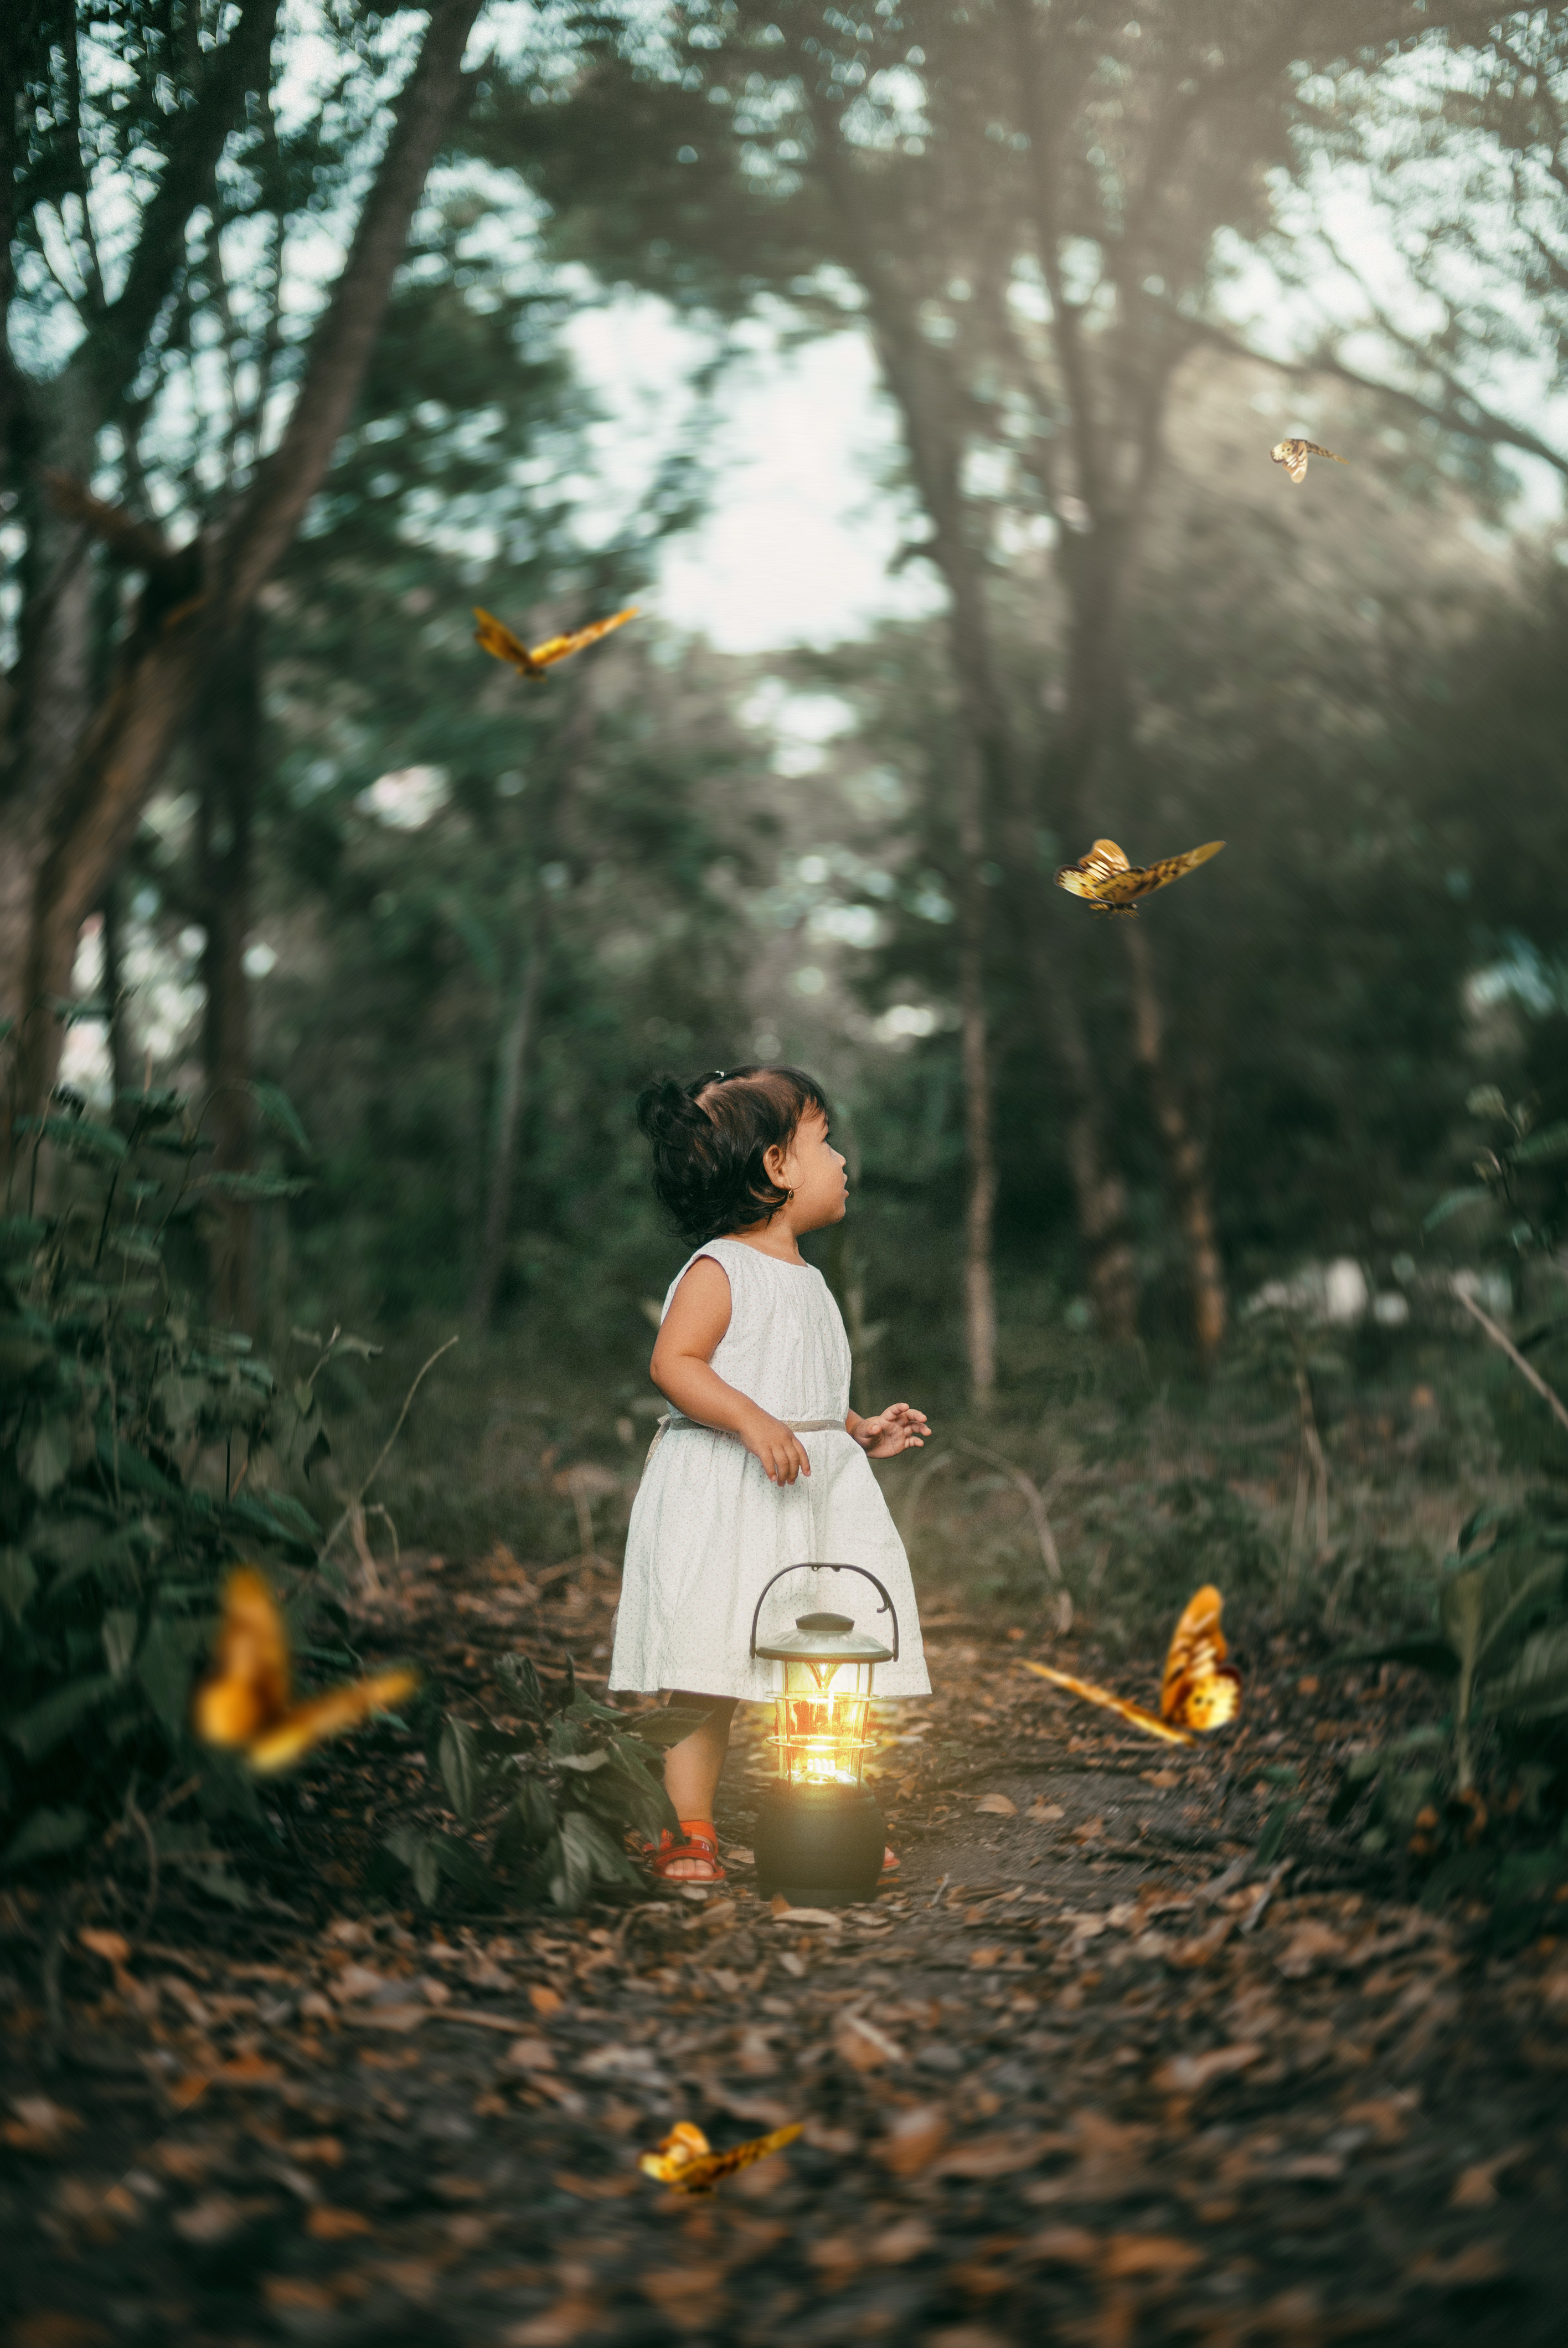 91767 download wallpaper Miscellanea, Miscellaneous, Child, Butterflies, Lamp, Lantern, Forest, Path screensavers and pictures for free